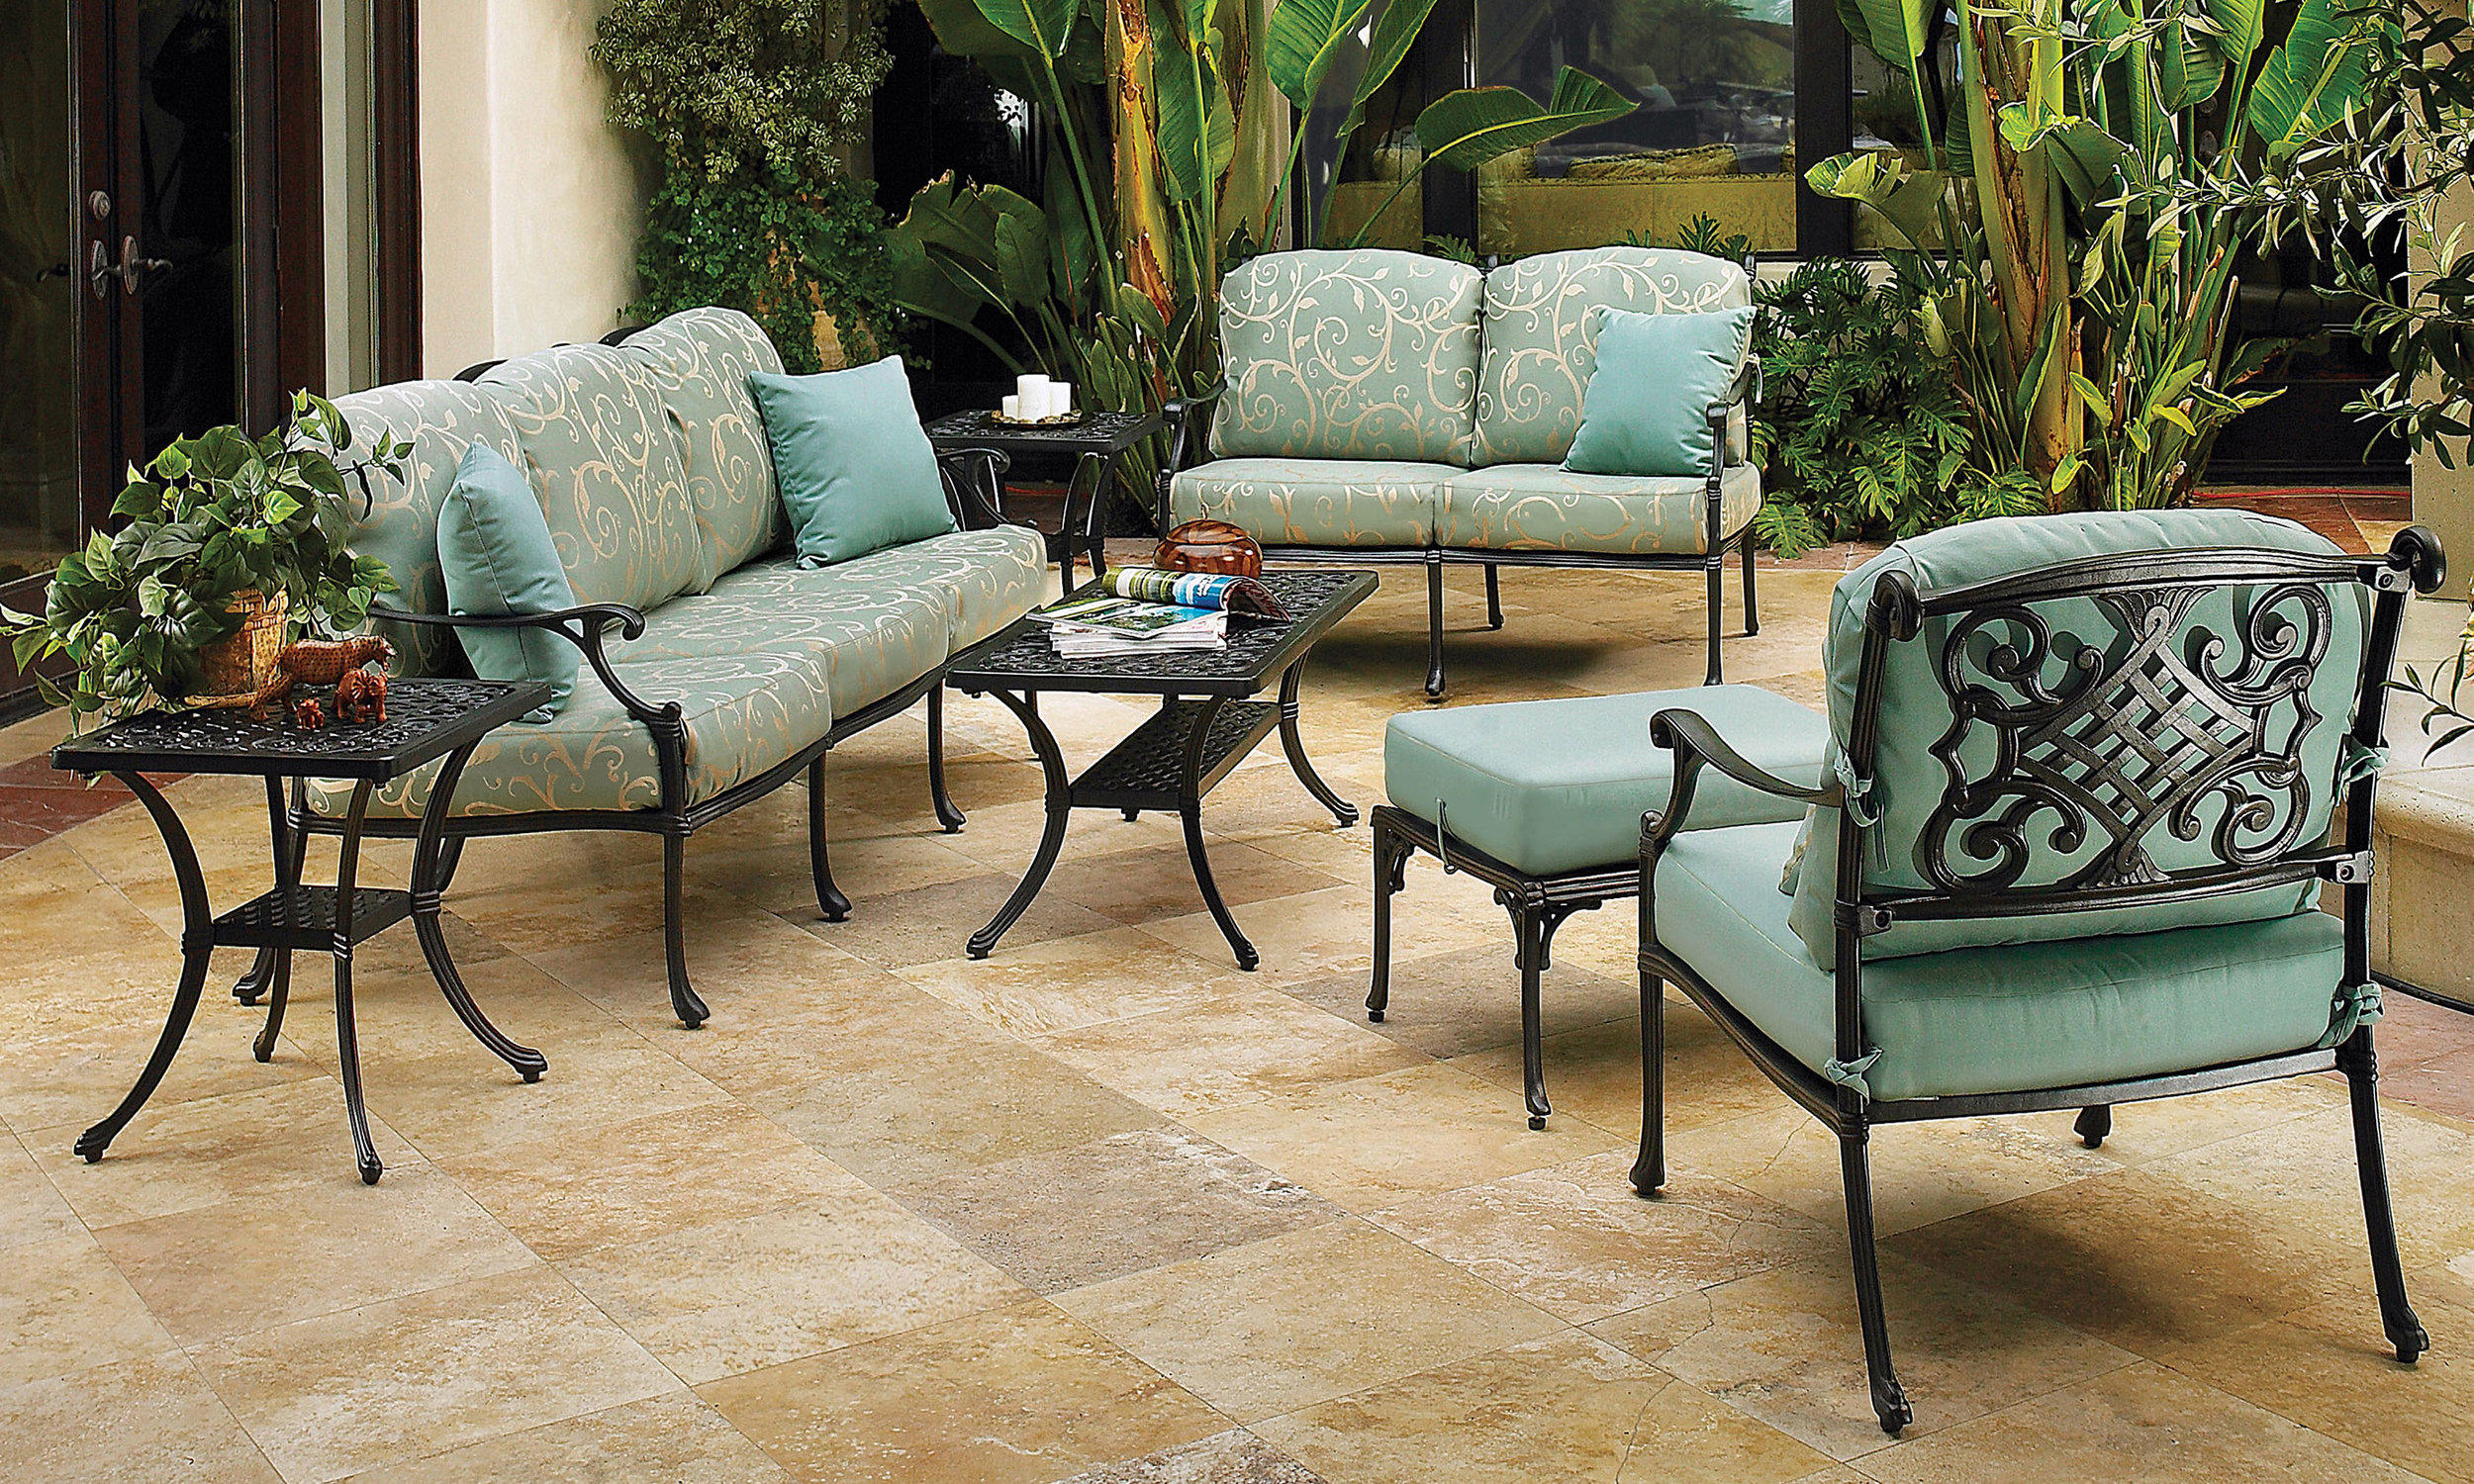 outdoor-furniture_furniture-collections_michigan_10-l.jpg